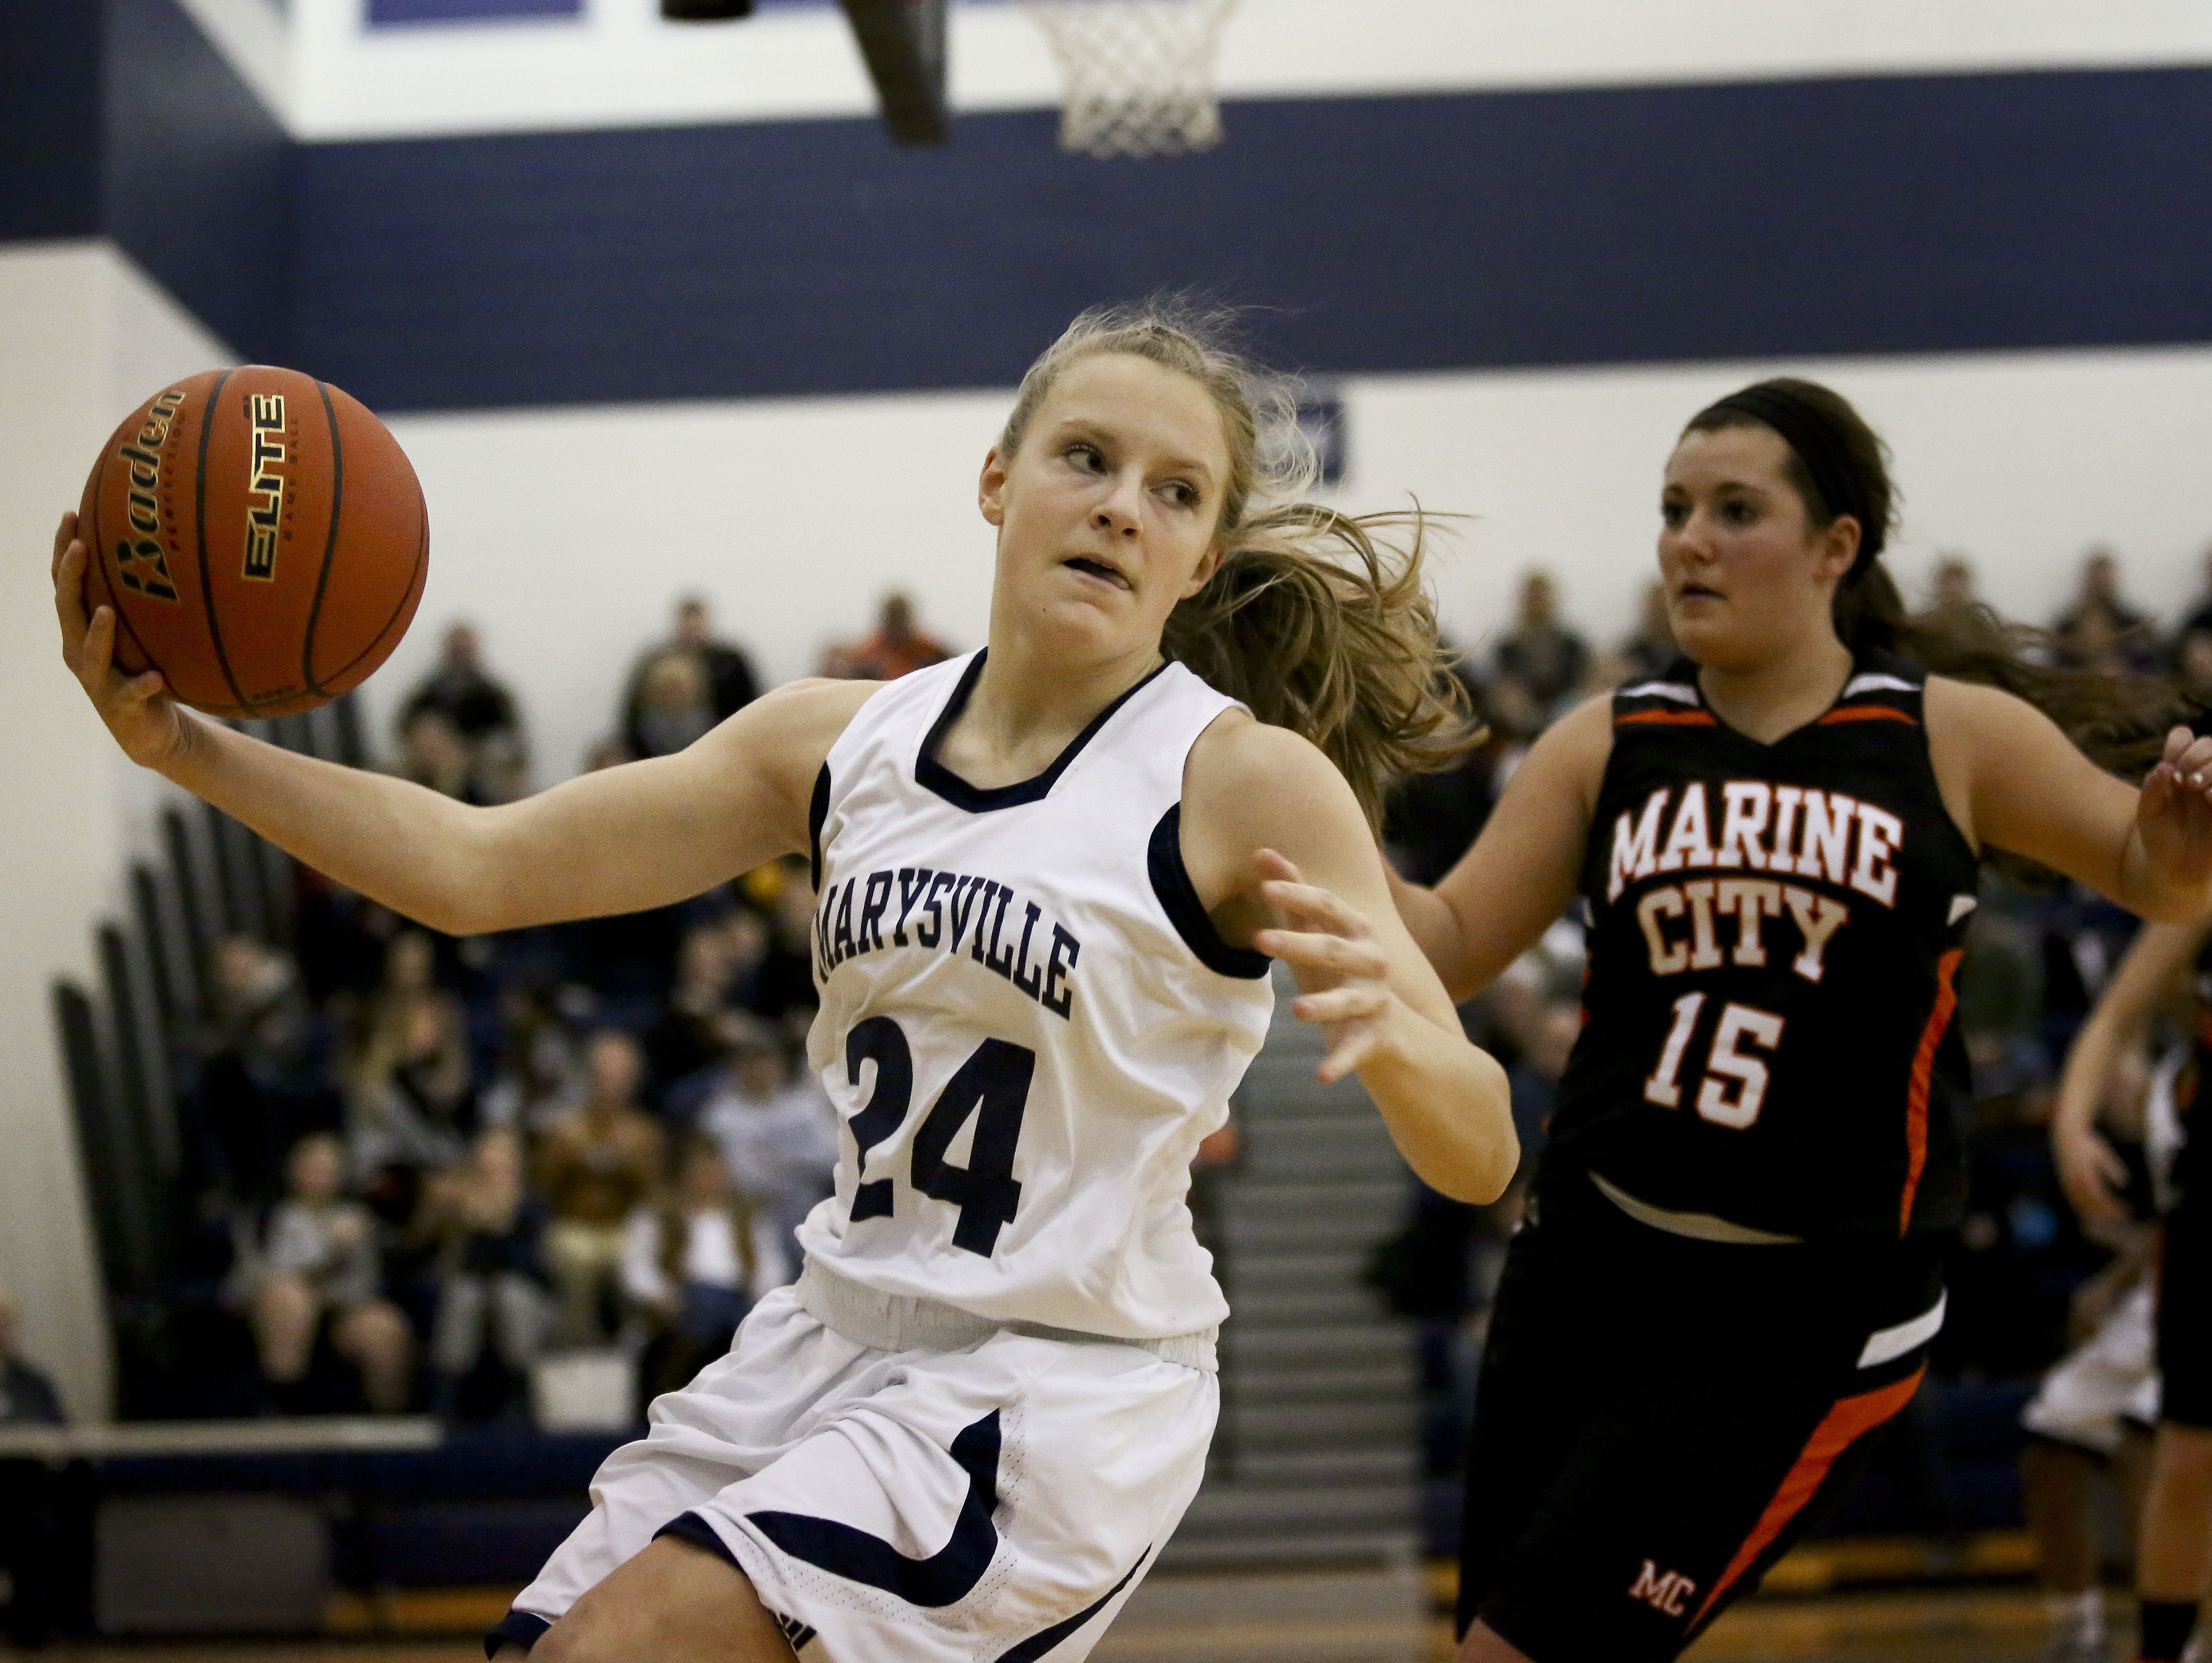 Marysville sophomore Hayley Delor keeps a loose ball in-bounds during a basketball game Friday, Jan. 8, 2016 at Marysville High School.